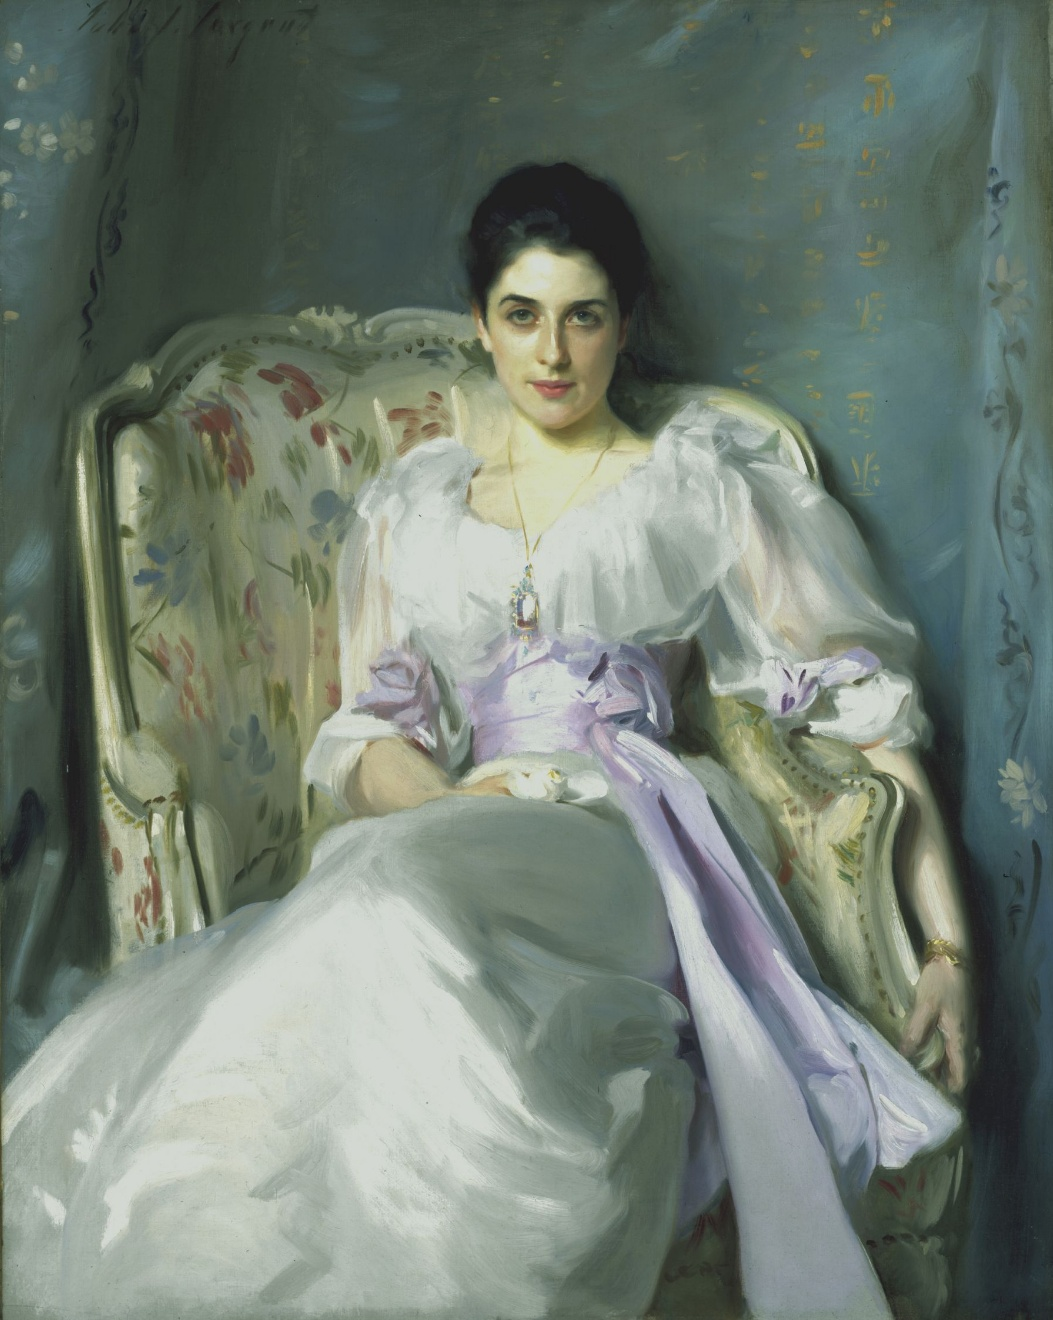 https://i0.wp.com/upload.wikimedia.org/wikipedia/commons/2/26/Sargent_Lady_Agnew_of_Lochnaw.jpg